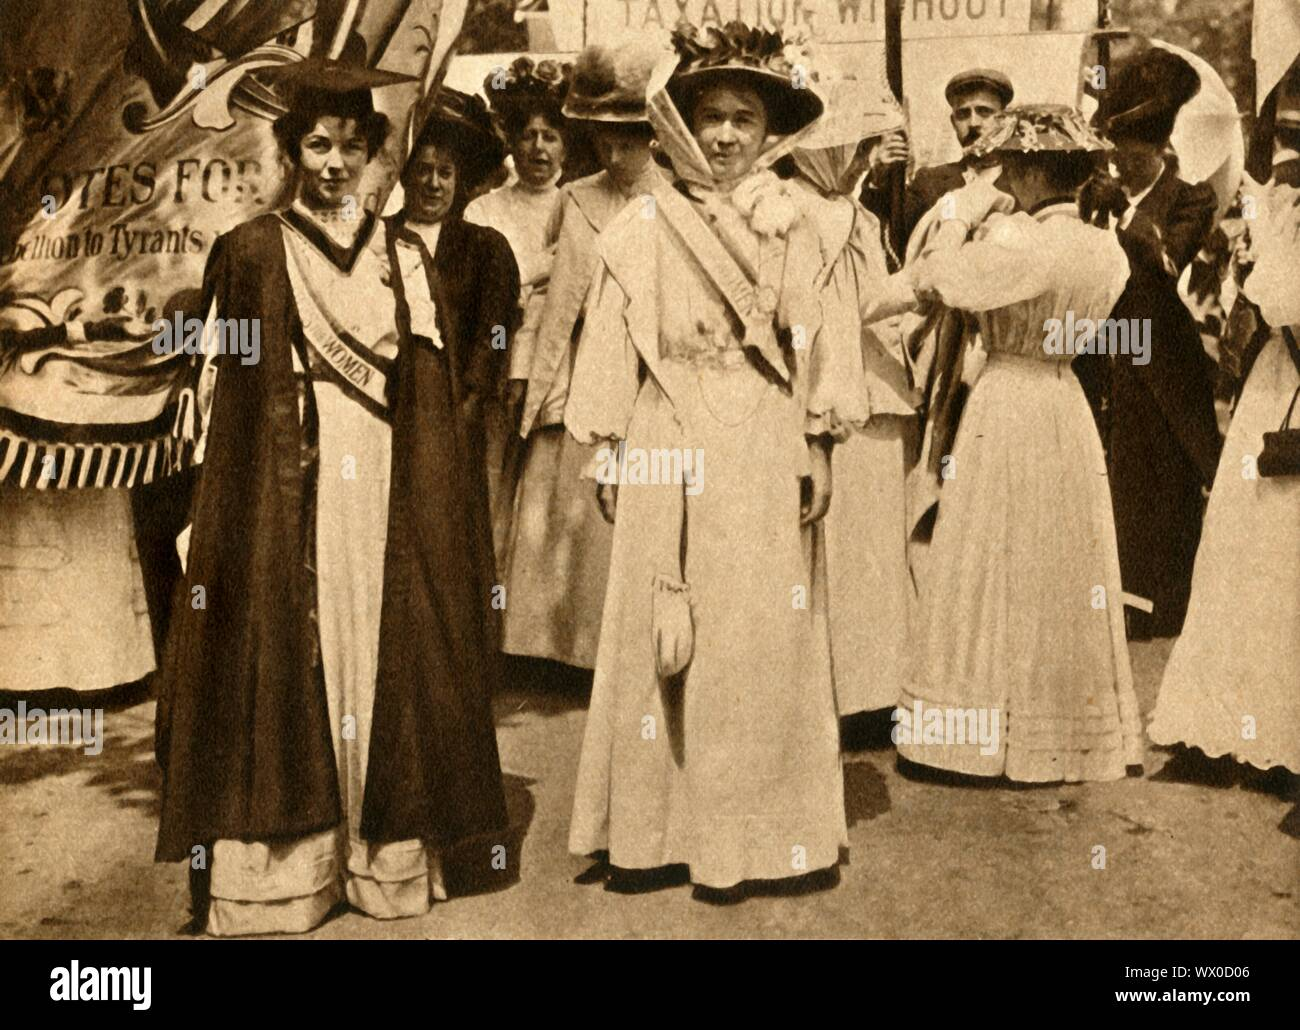 """Christabel Pankhurst and Emmeline Pethick-Lawrence, Hyde Park, London, 21 June 1908, (1933). British suffrage campaigners Christabel Pankhurst (1880-1958) and Emmeline Pethick-Lawrence (1867-1954) at a rally on 'Women's Sunday'. Suffragettes protested through direct action and civil disobedience, achieving partial suffrage in 1918. It was not until 1928 that all women finally gainied the right to vote. From """"The Pageant of the Century"""". [Odhams Press Ltd, 1933] Stock Photo"""